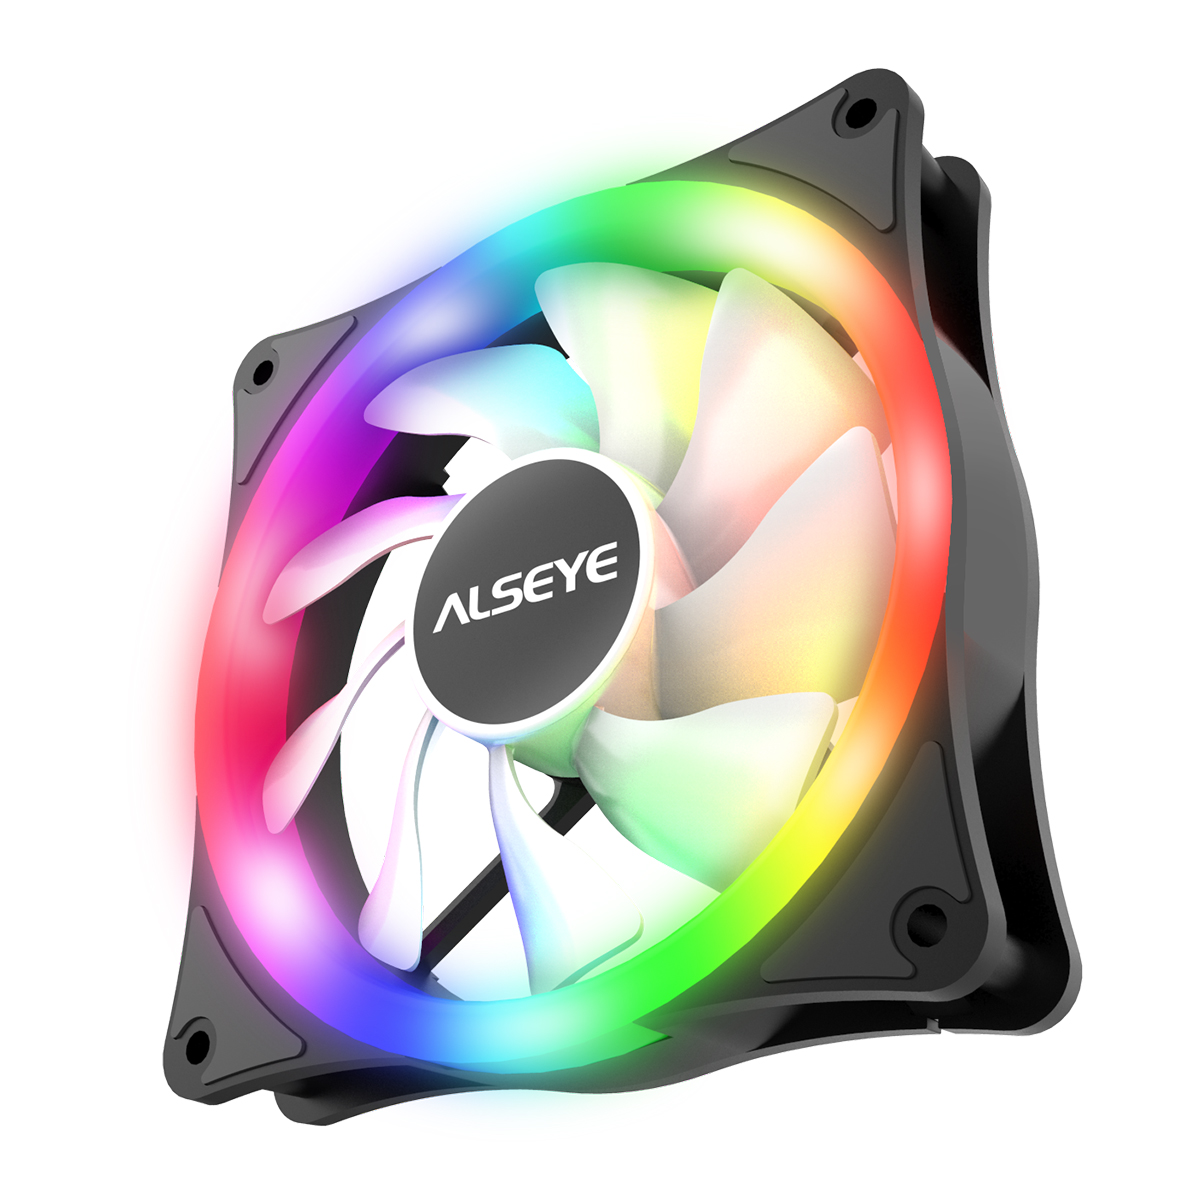 ALSEYE AURO Series <font><b>140mm</b></font> LED Computer Case Cooling <font><b>Fan</b></font> Molex Connector Auto Rainbow <font><b>RGB</b></font> image